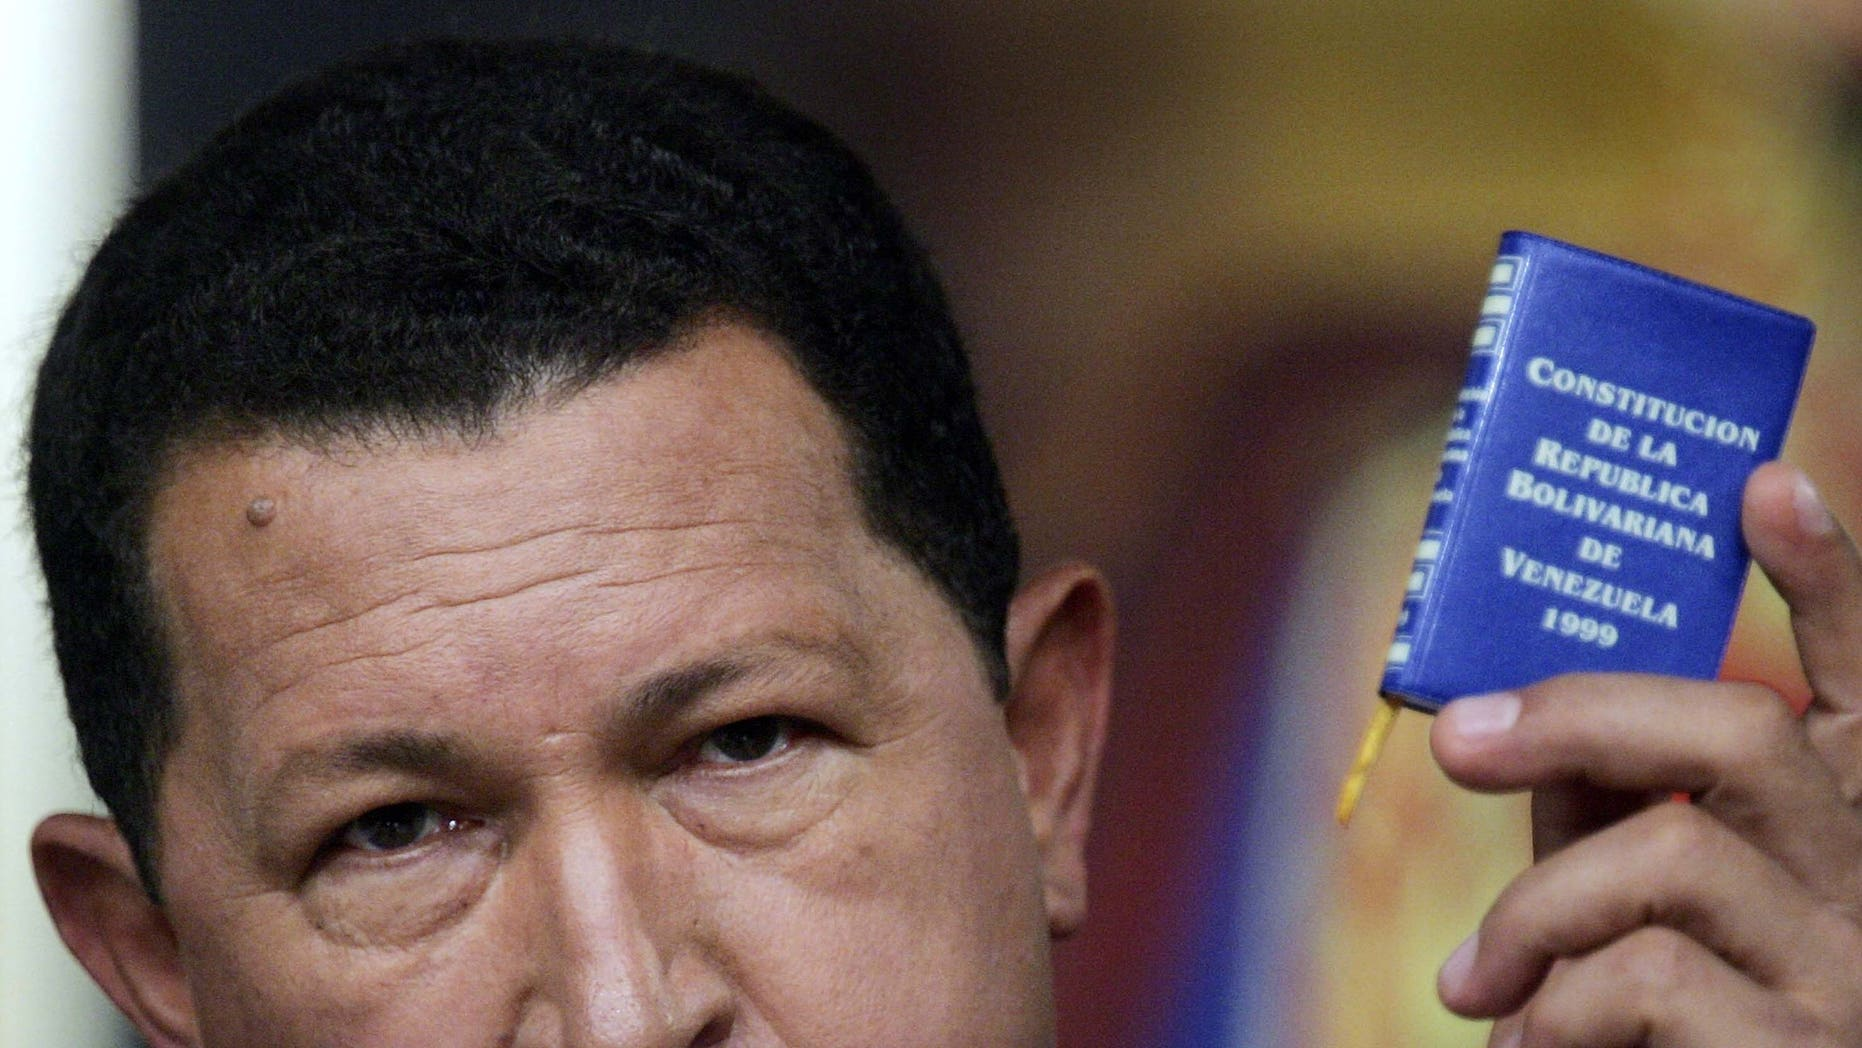 CARACAS, VENEZUELA - DECEMBER 05:  Venezuelan President Hugo Chavez speaks at a press conference while holding a copy of the Venezuelan constitution in Miraflores Palace December 5, 2006 in Caracas, Venezuela. Chavez was officially declared the re-elected president by electoral authorities today after defeating challenger Manuel Rosales in the December 3 election.  (Photo by Mario Tama/Getty Images)